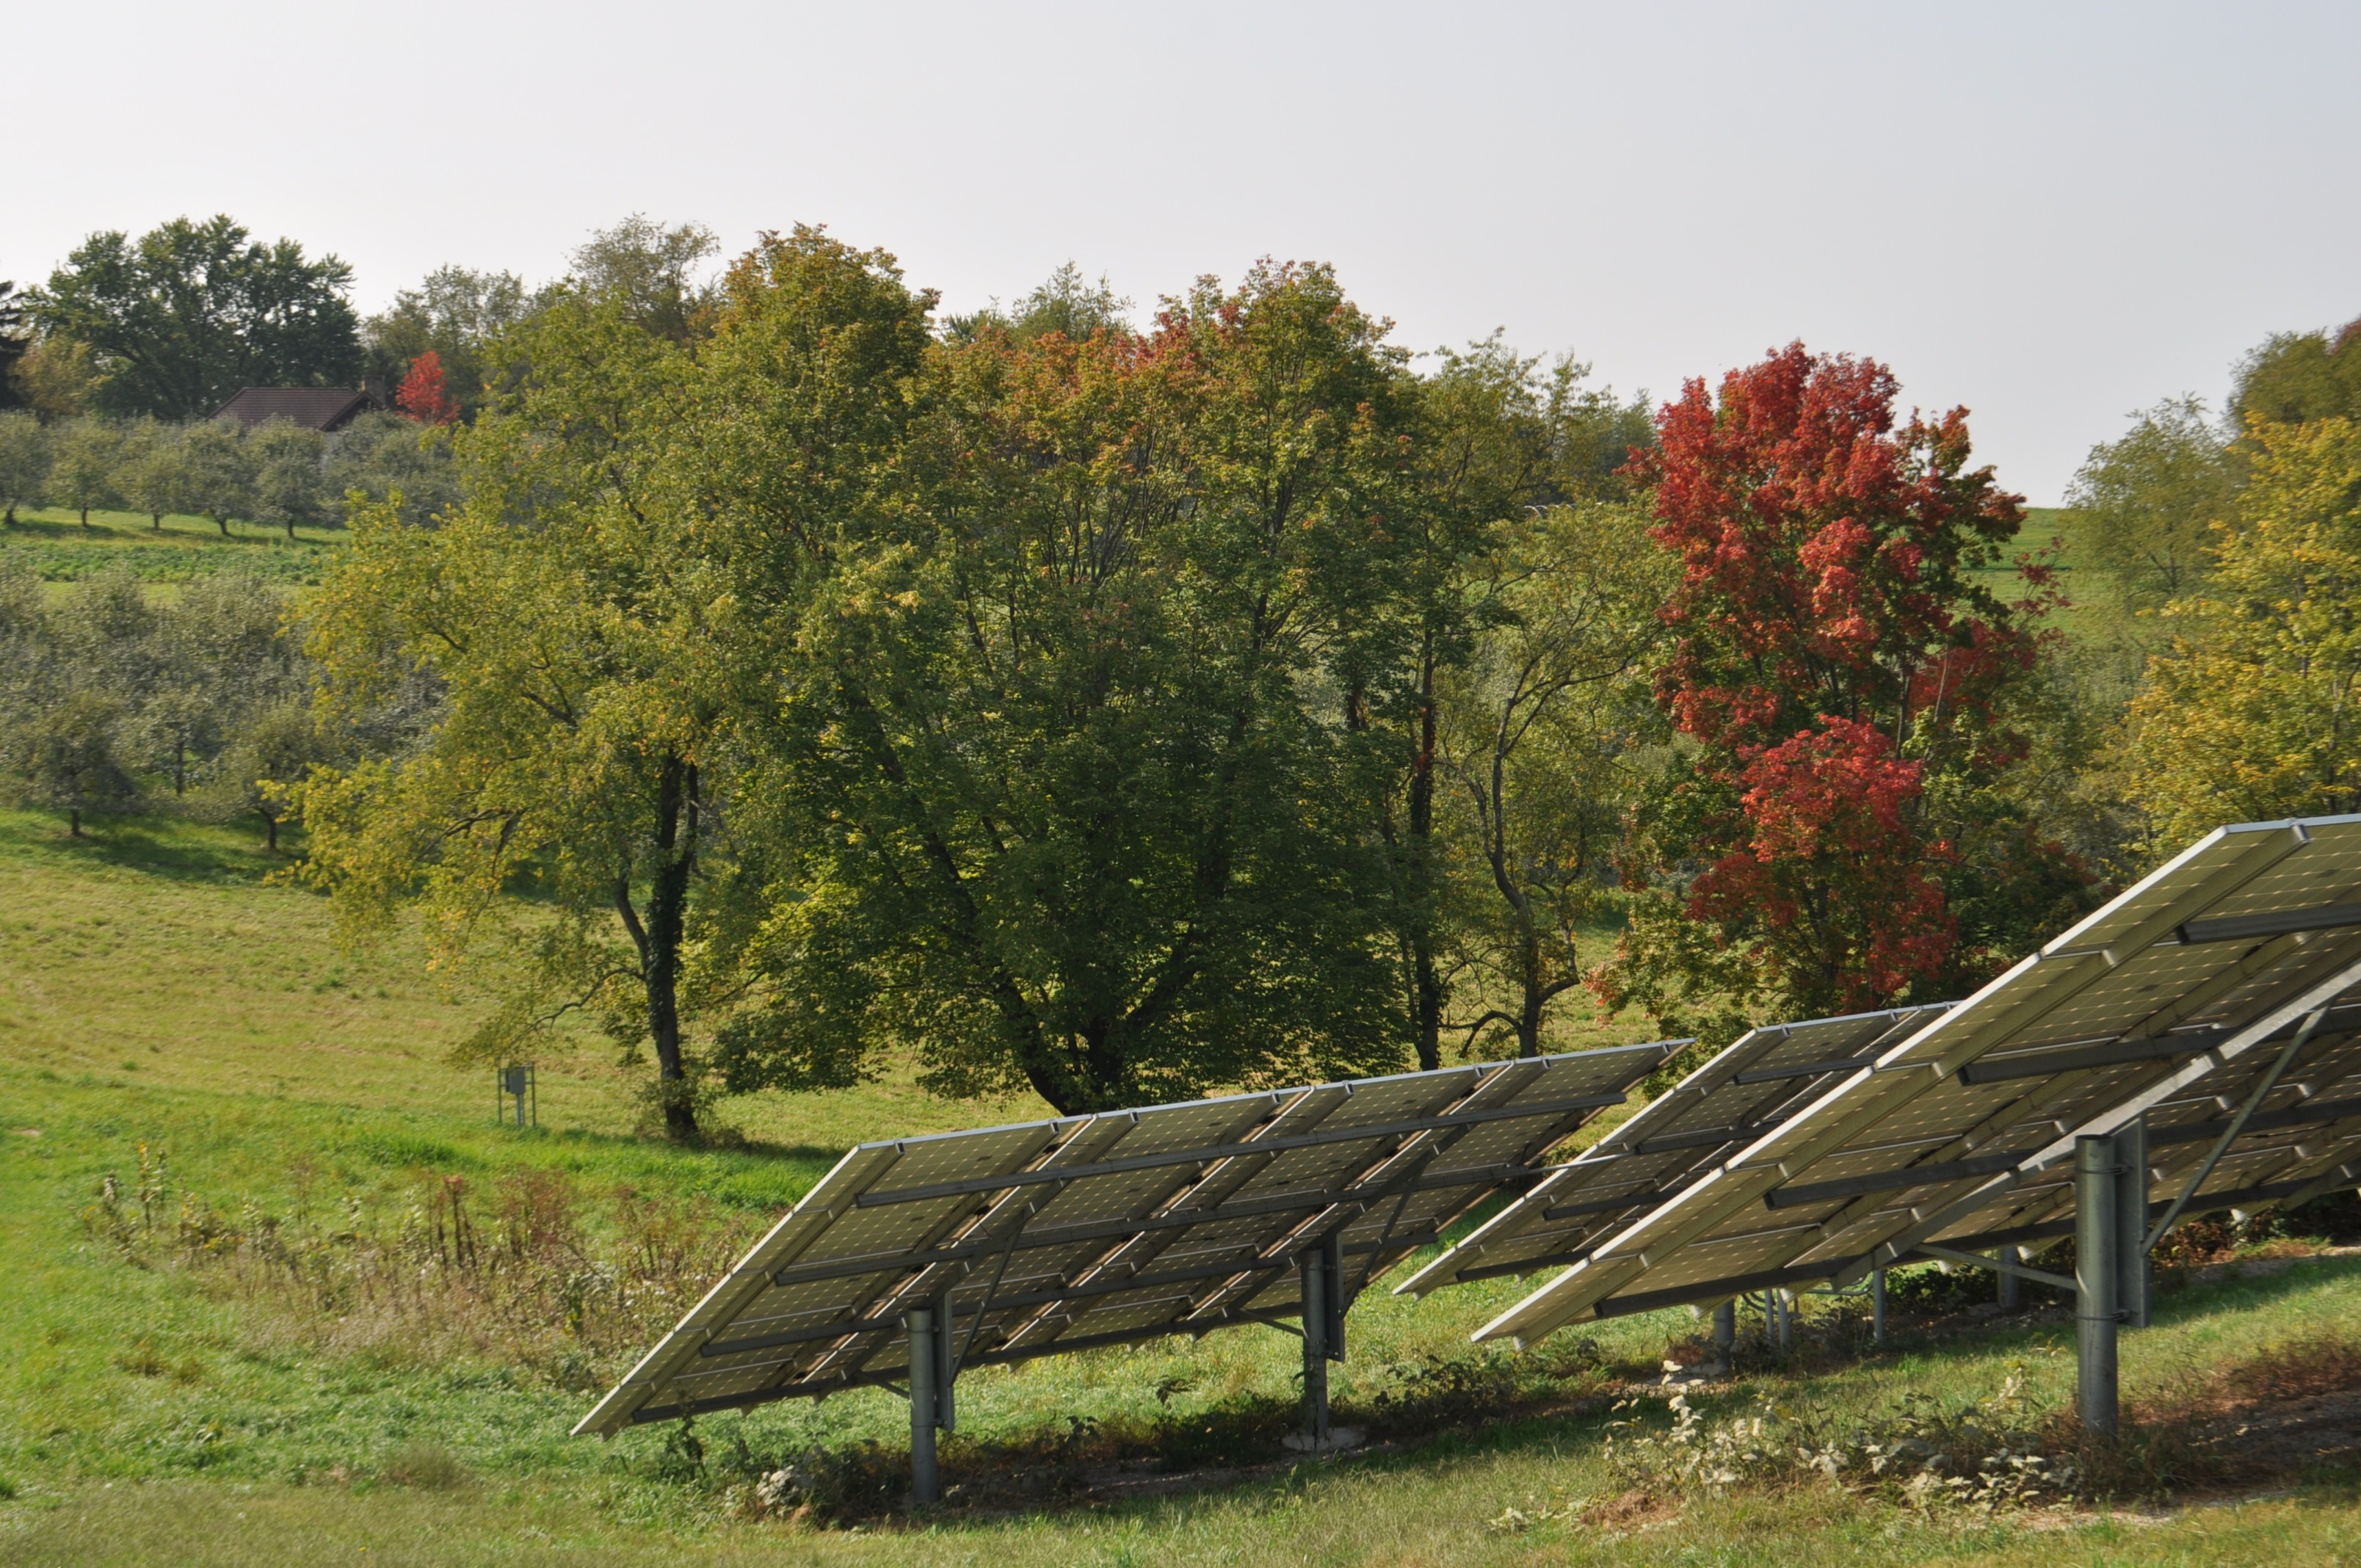 Solar panels with coming fall color